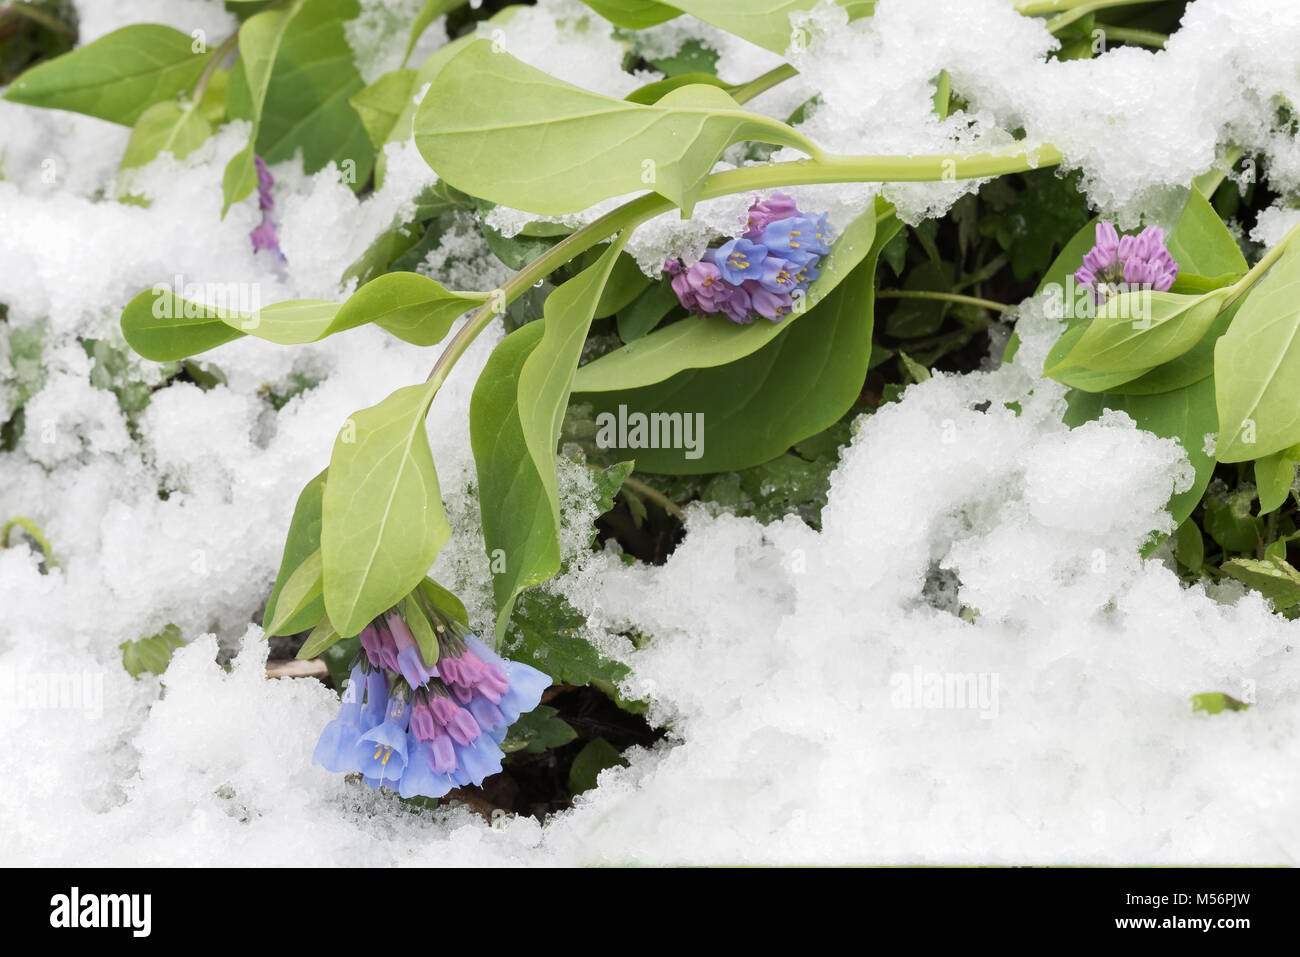 Virginia Bluebells weighed down by a spring snow at Shenks Ferry Wildflower Preserve, Lancaster Co., Pennsylvania. - Stock Image